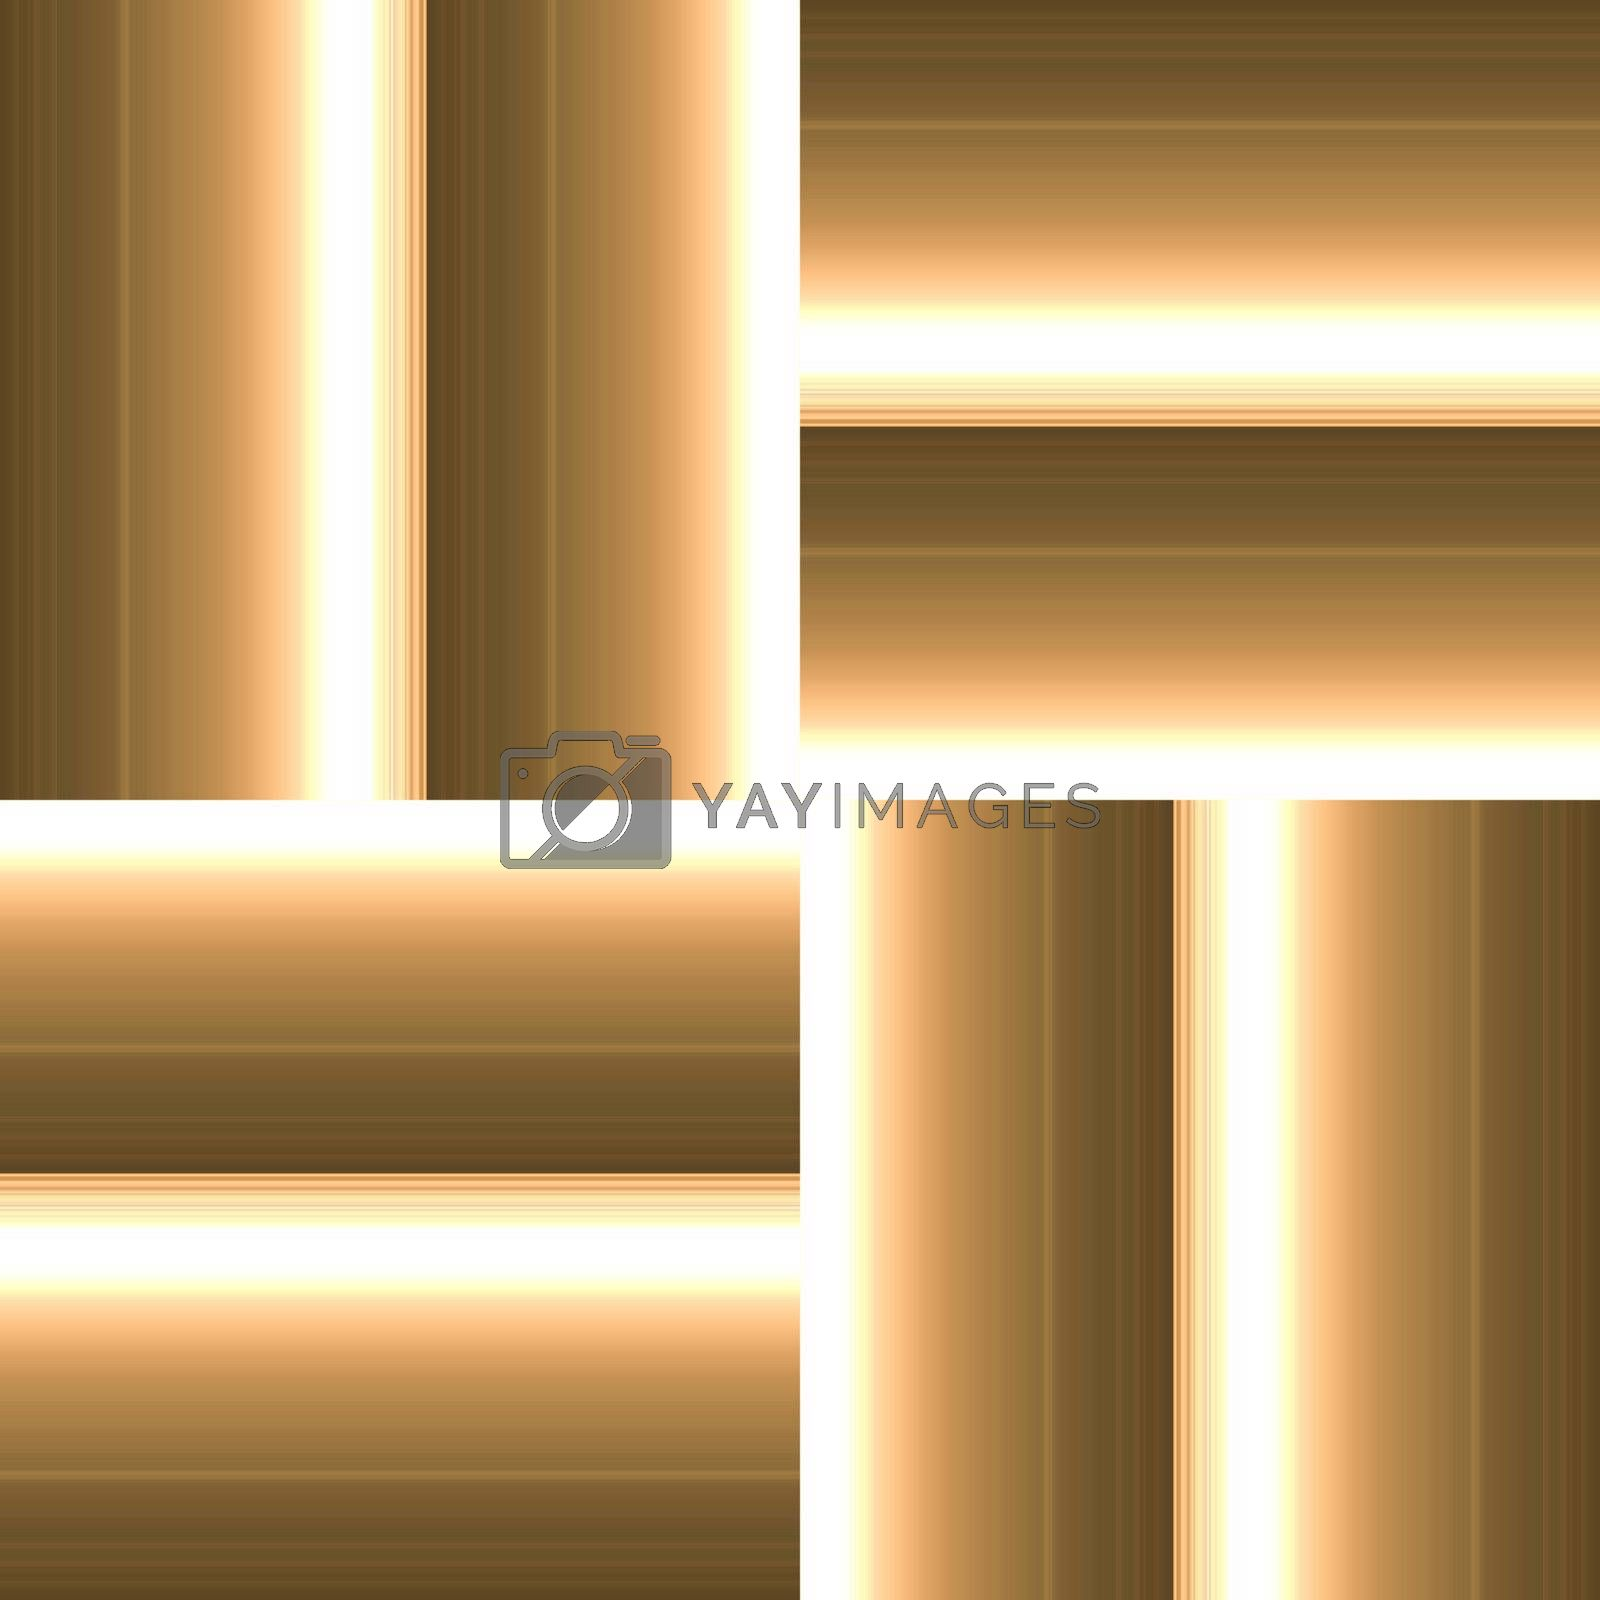 Square patterned background with feeling of dry desert